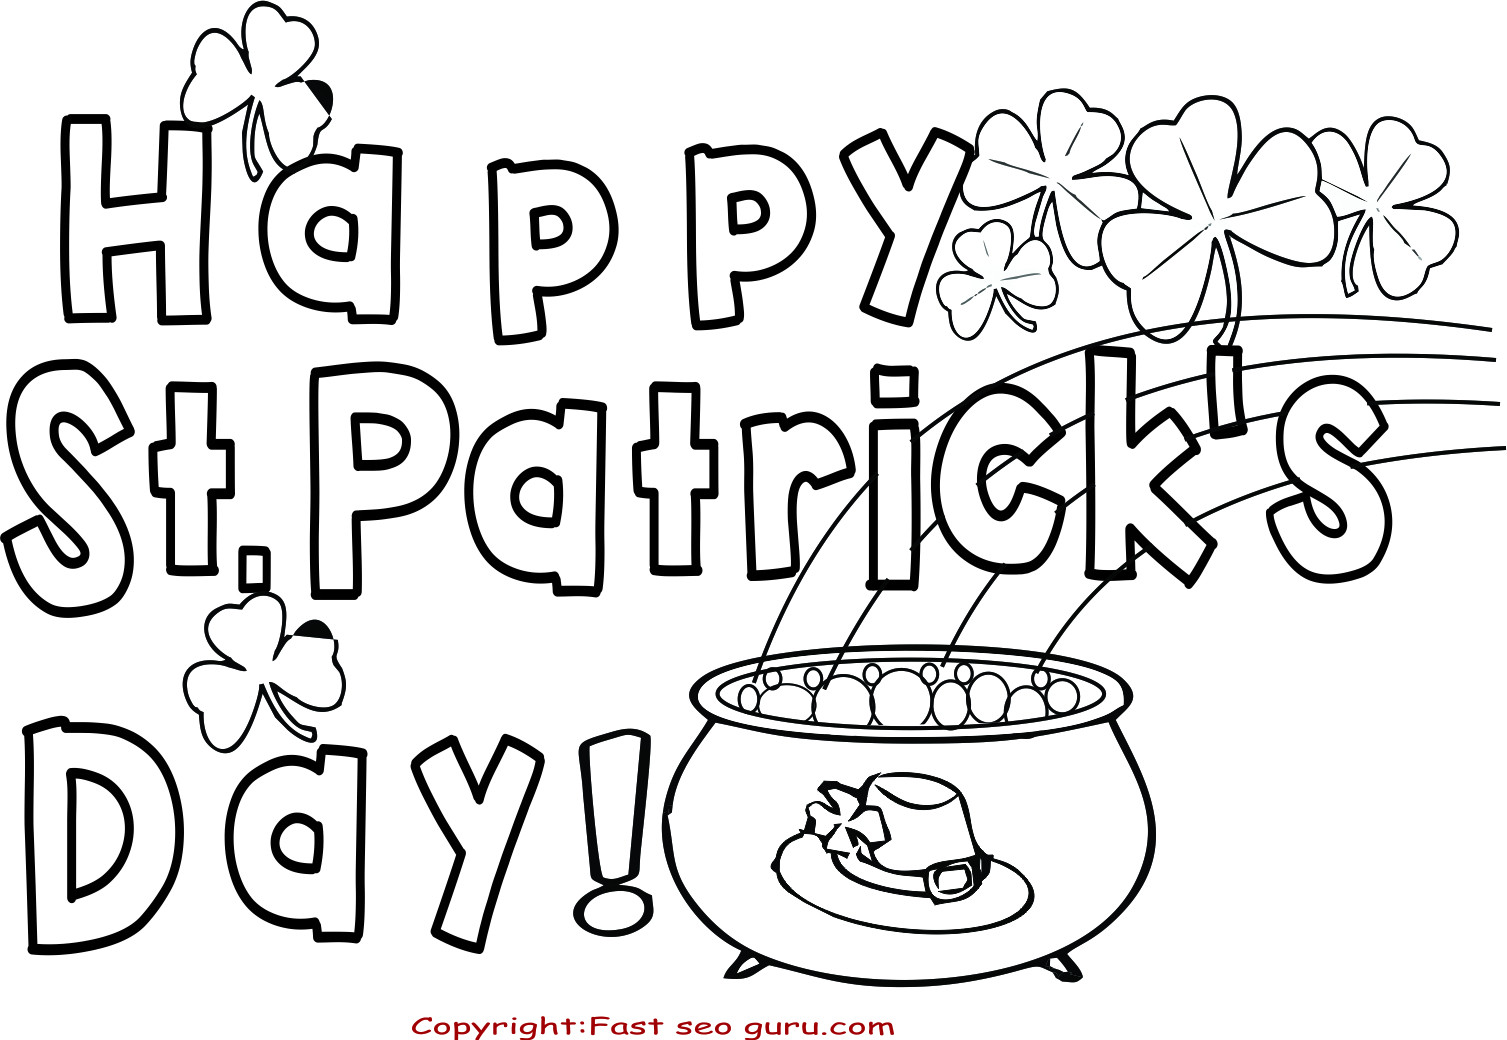 St Patrick'S Day Coloring Sheet  83 Printable St Patricks Day Coloring Pages St Patrick